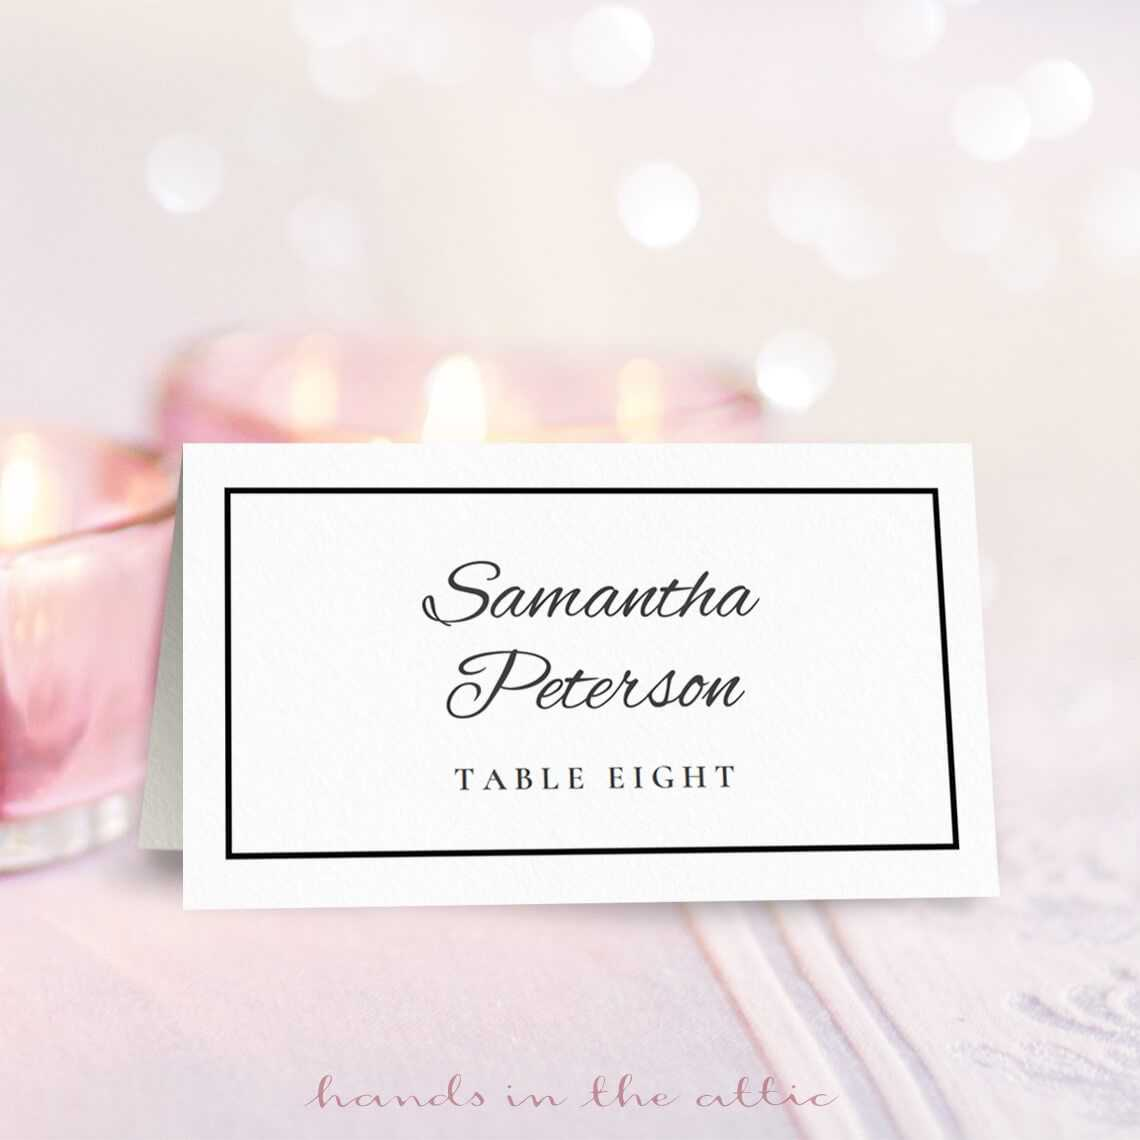 002 Template Ideas For Place Outstanding Cards Wedding Free Within Place Card Template 6 Per Sheet